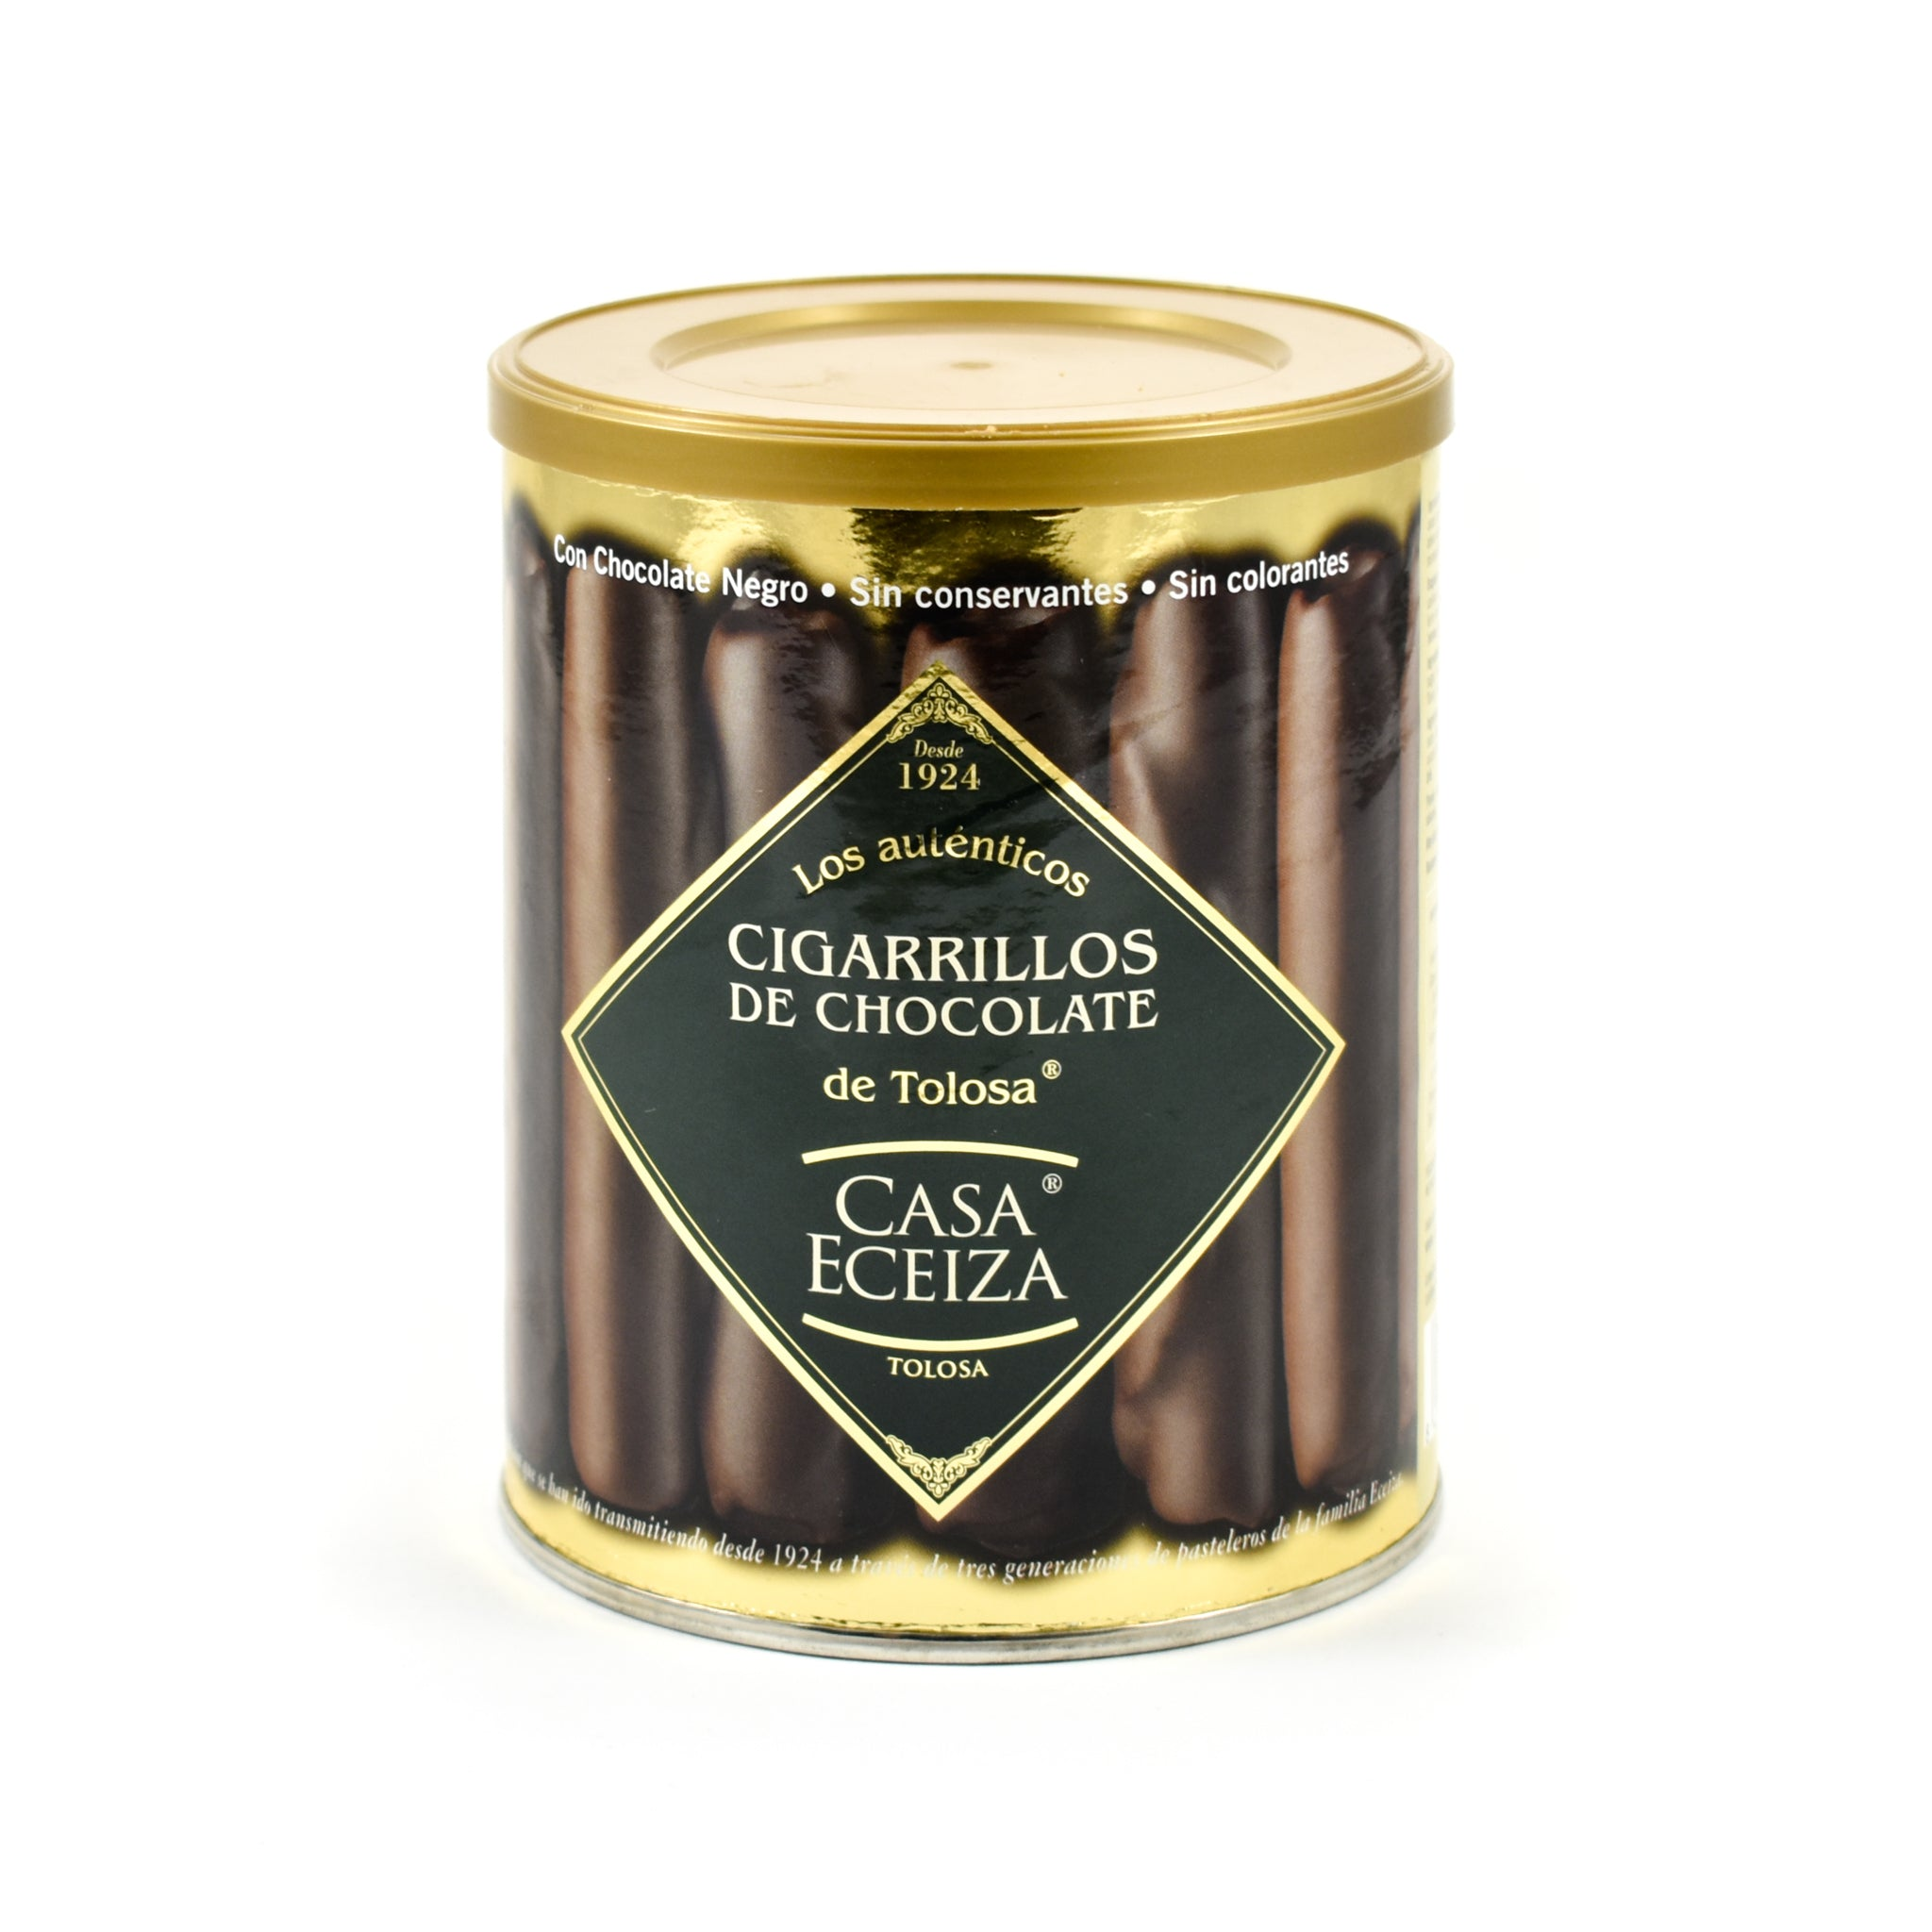 Casa Eceiza Chocolate Covered Cigarrillos Ingredients Chocolate Bars & Confectionery Spanish Food